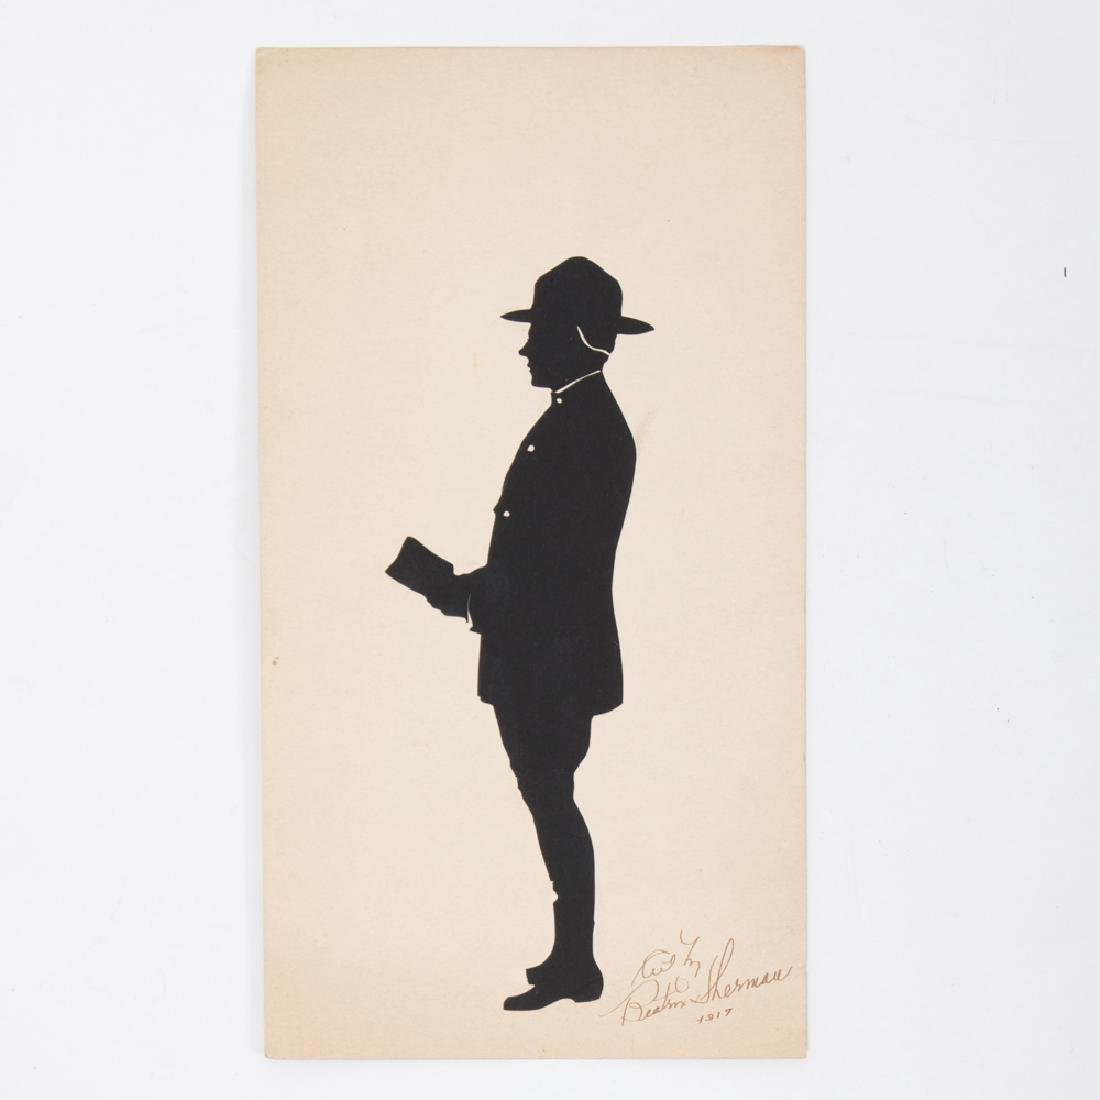 A Cut Paper Silhouette Depicting a Solider by Beatrix